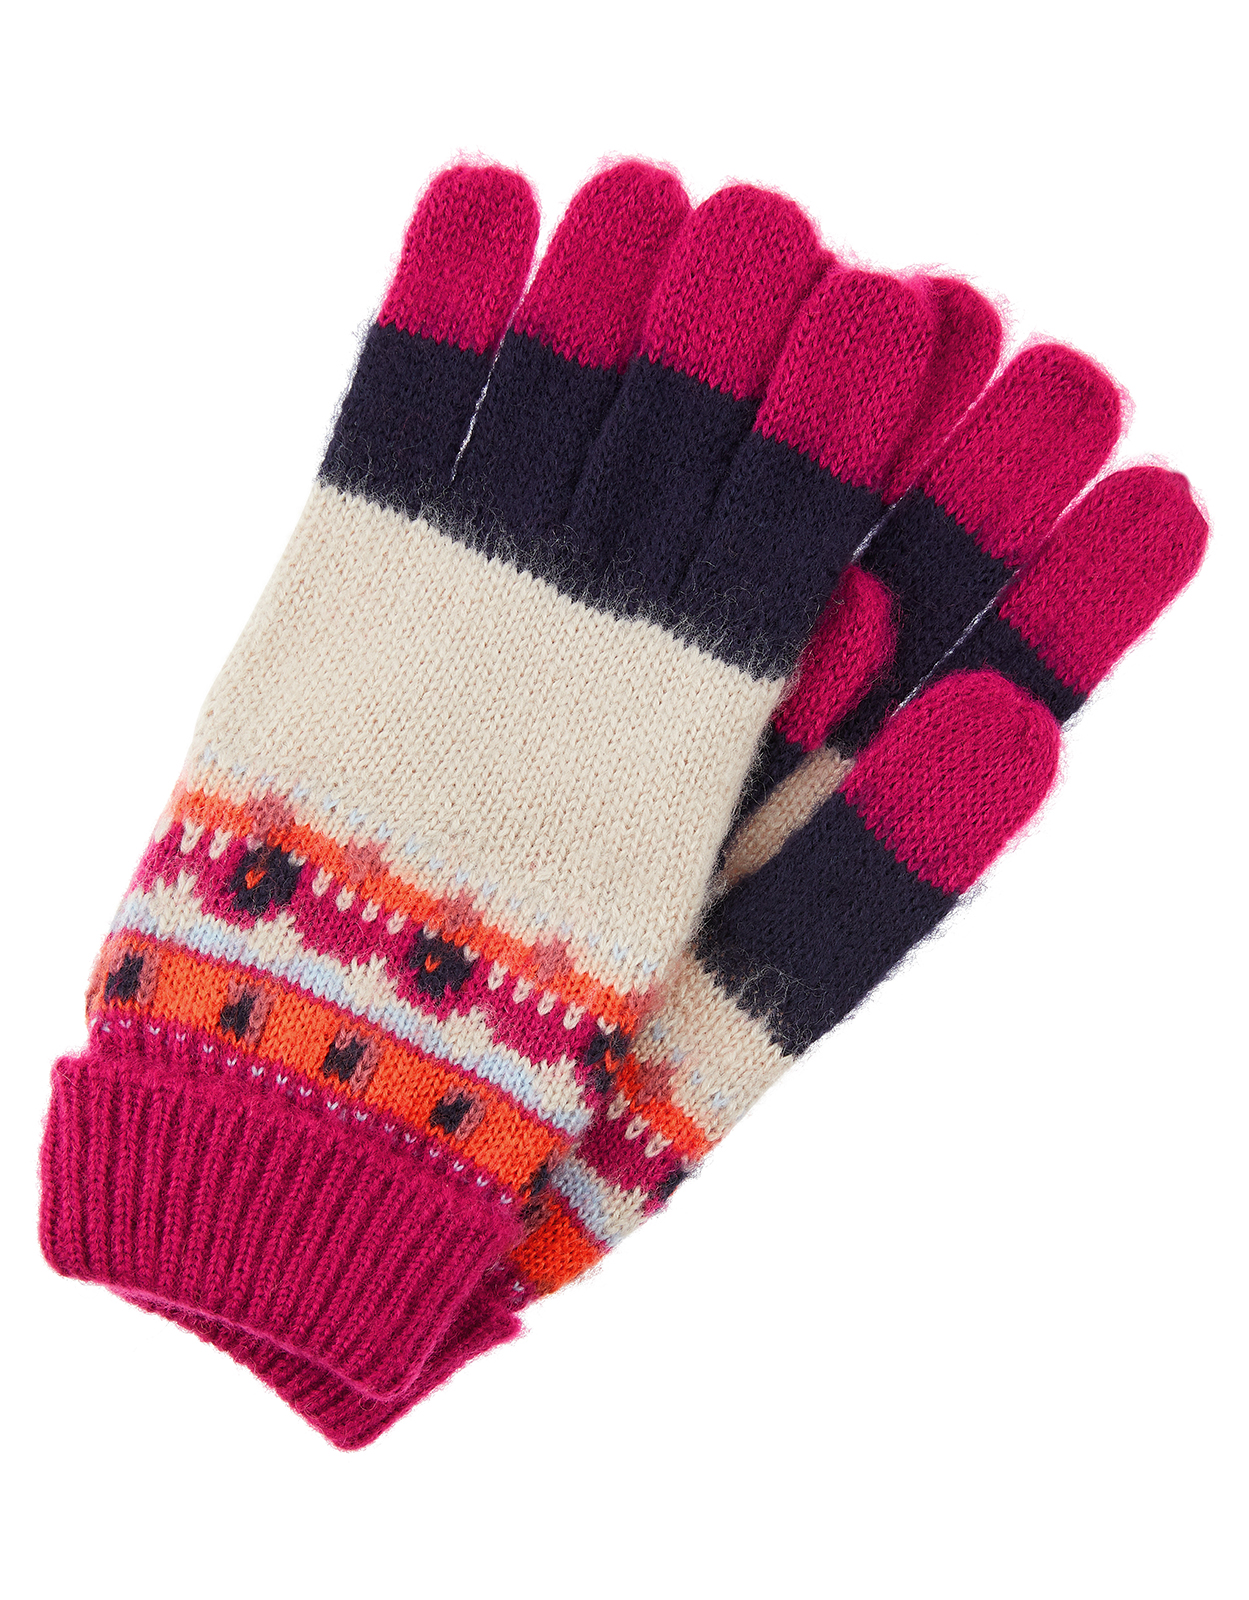 Monsoon Bibi Bright Fair Isle Knit Gloves